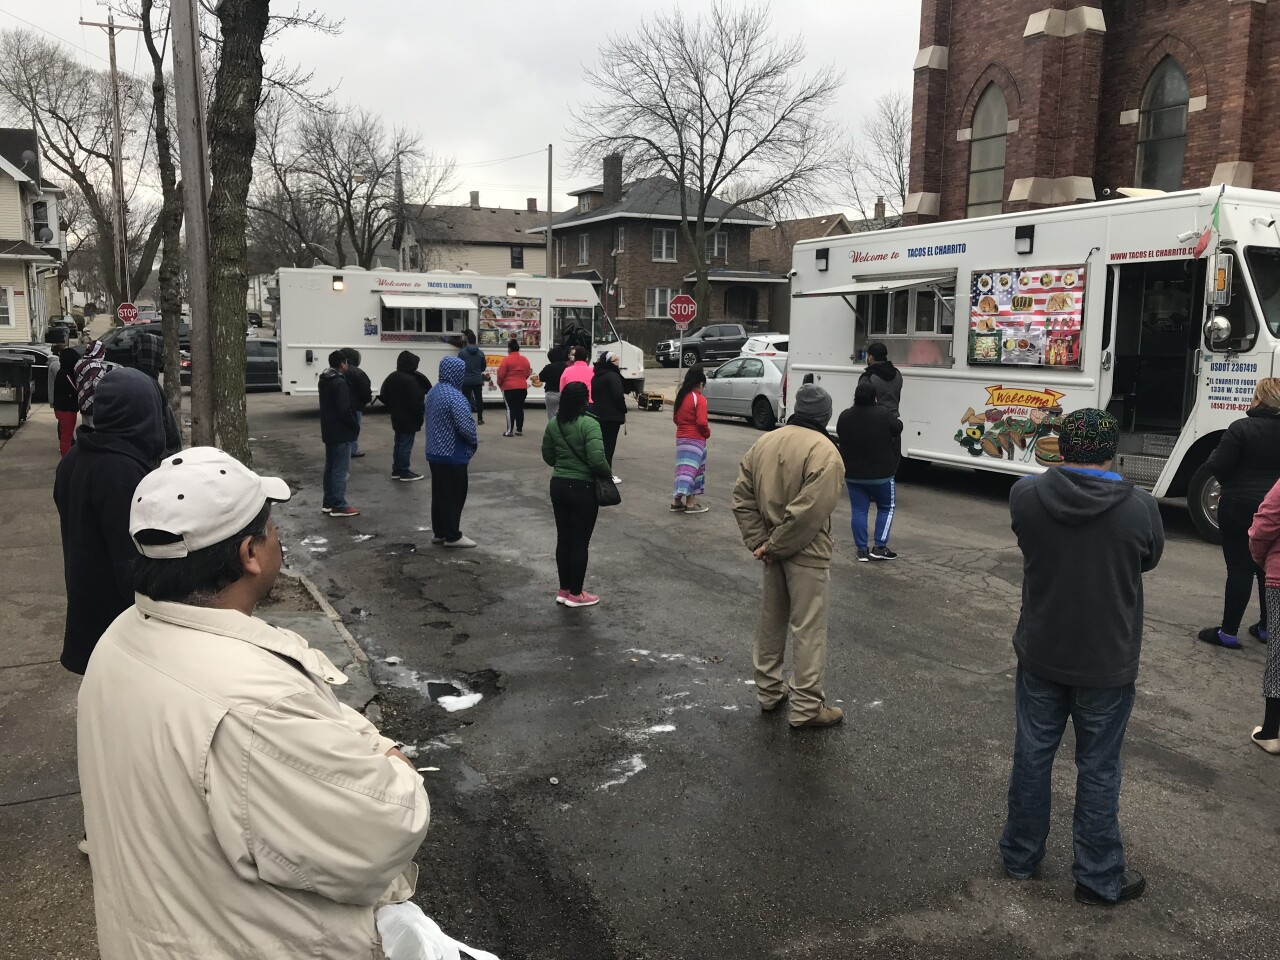 People do their best to stay 6 feet apart while waiting for their tacos at the corner of 14th and Scott Streets in Milwaukee.